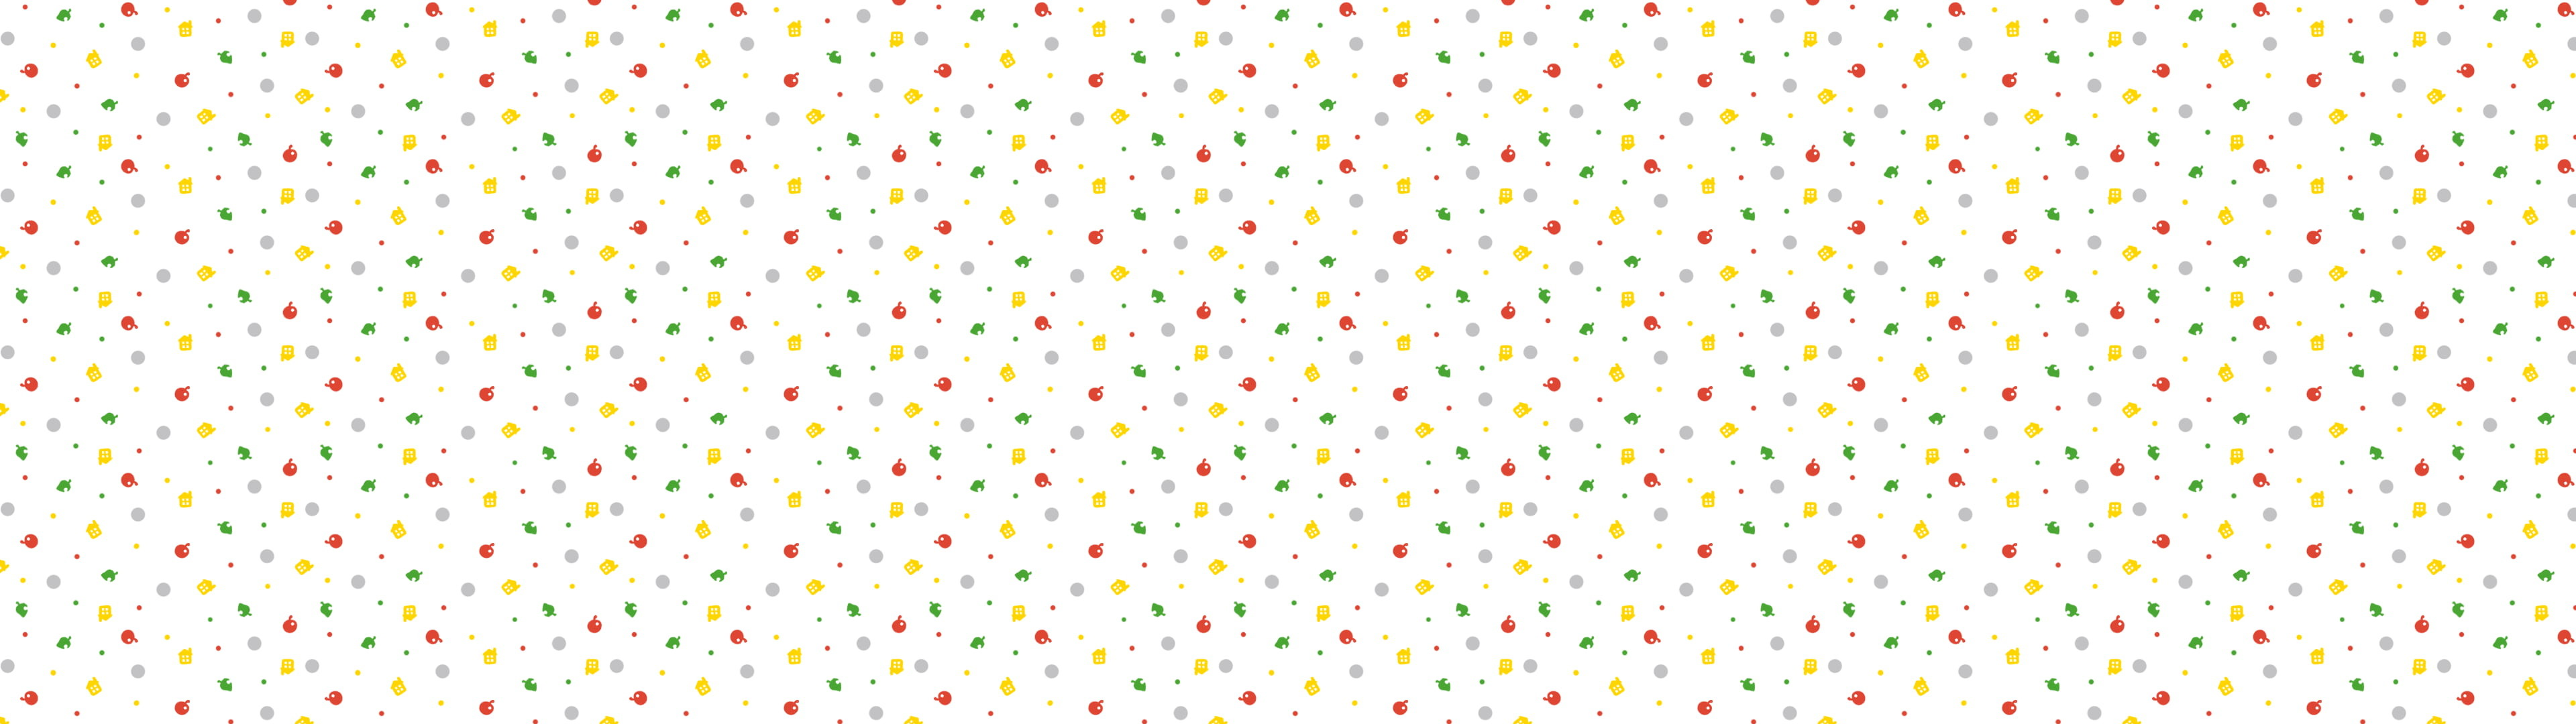 Res: 3840x1080, white, red, and yellow digital wallpaper HD wallpaper